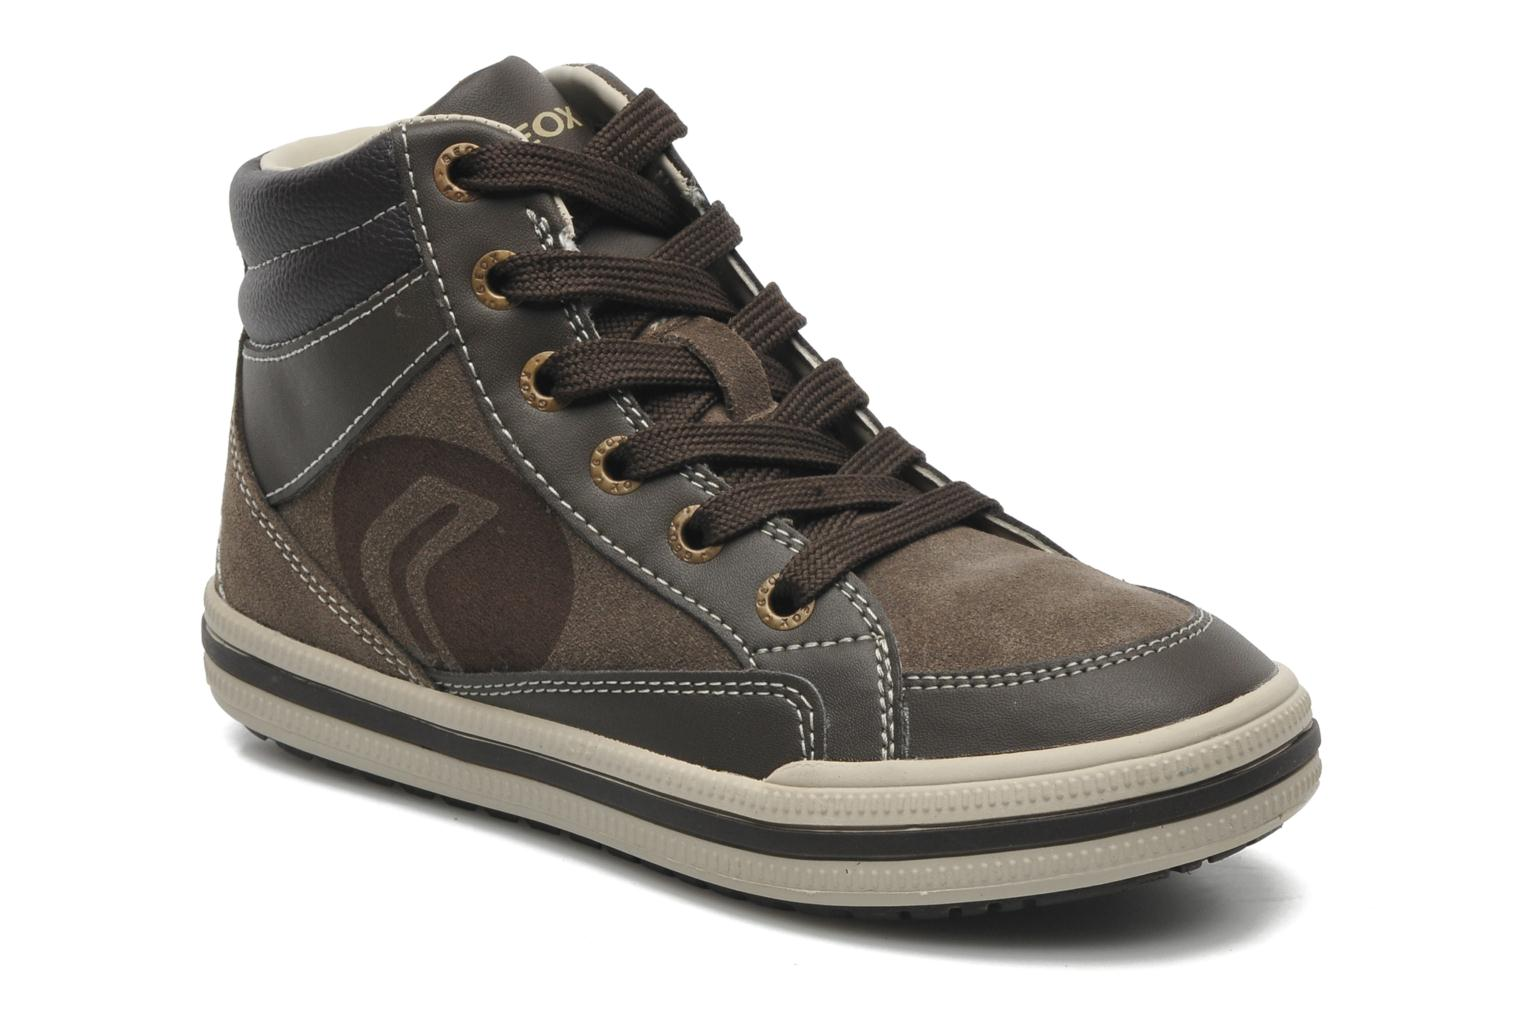 Baskets Geox JR ELVIS B Marron vue détail/paire